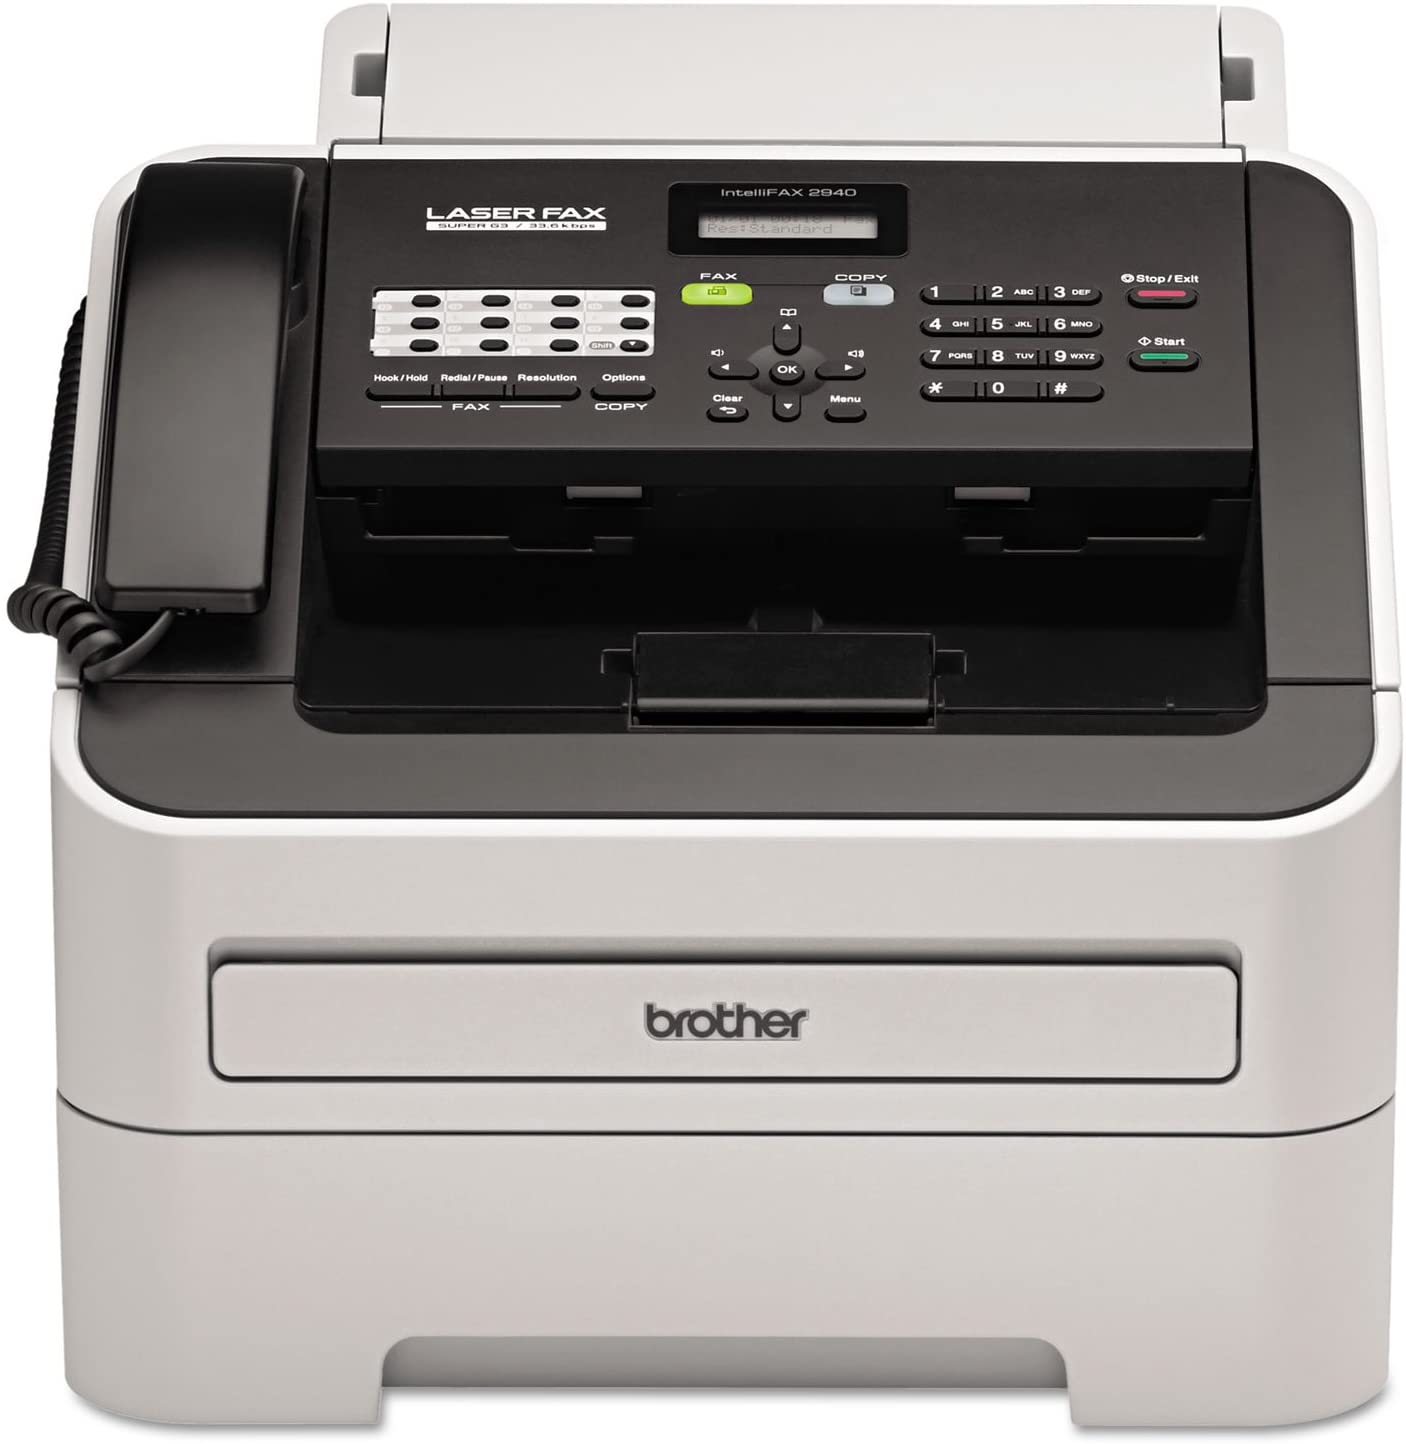 BRTFAX2940 - intelliFAX-2940 Laser Fax Machine